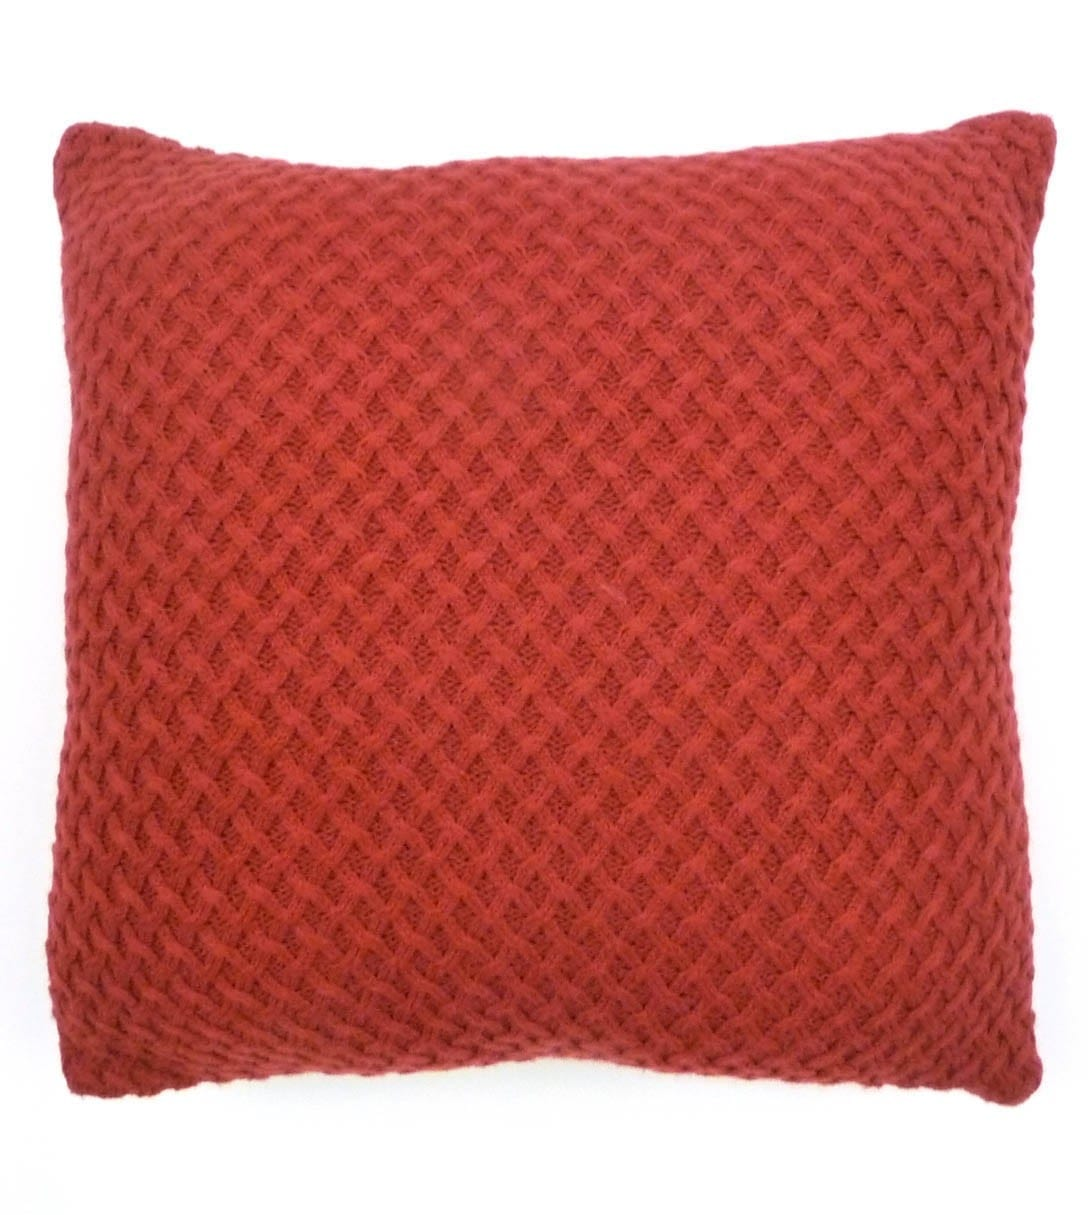 Red Woollen Lattice Cushion cover at Henley Circle Online Shop